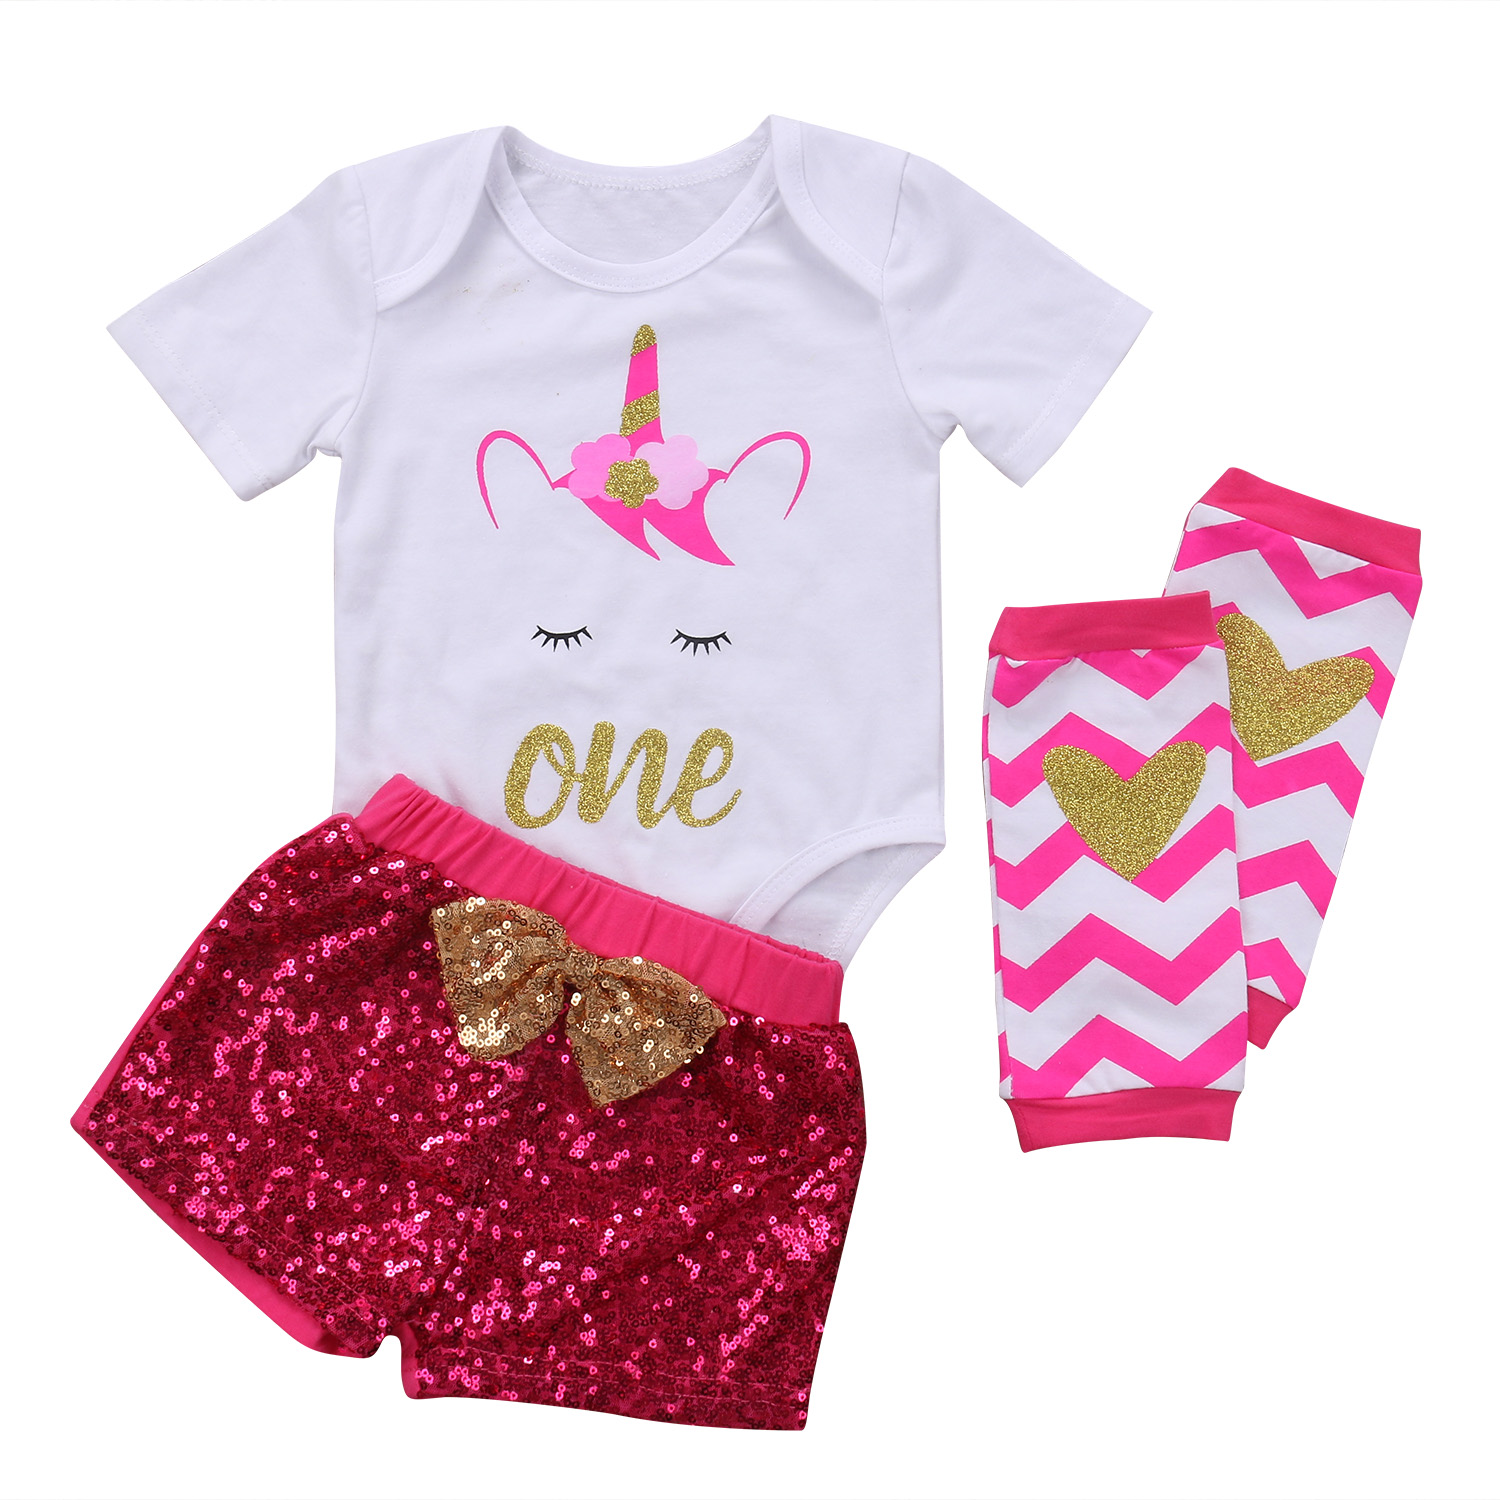 3PCS New Printed Infant Baby Girl Romper Tops+Pants+Leg Warmer Outfit Set Clothes ...